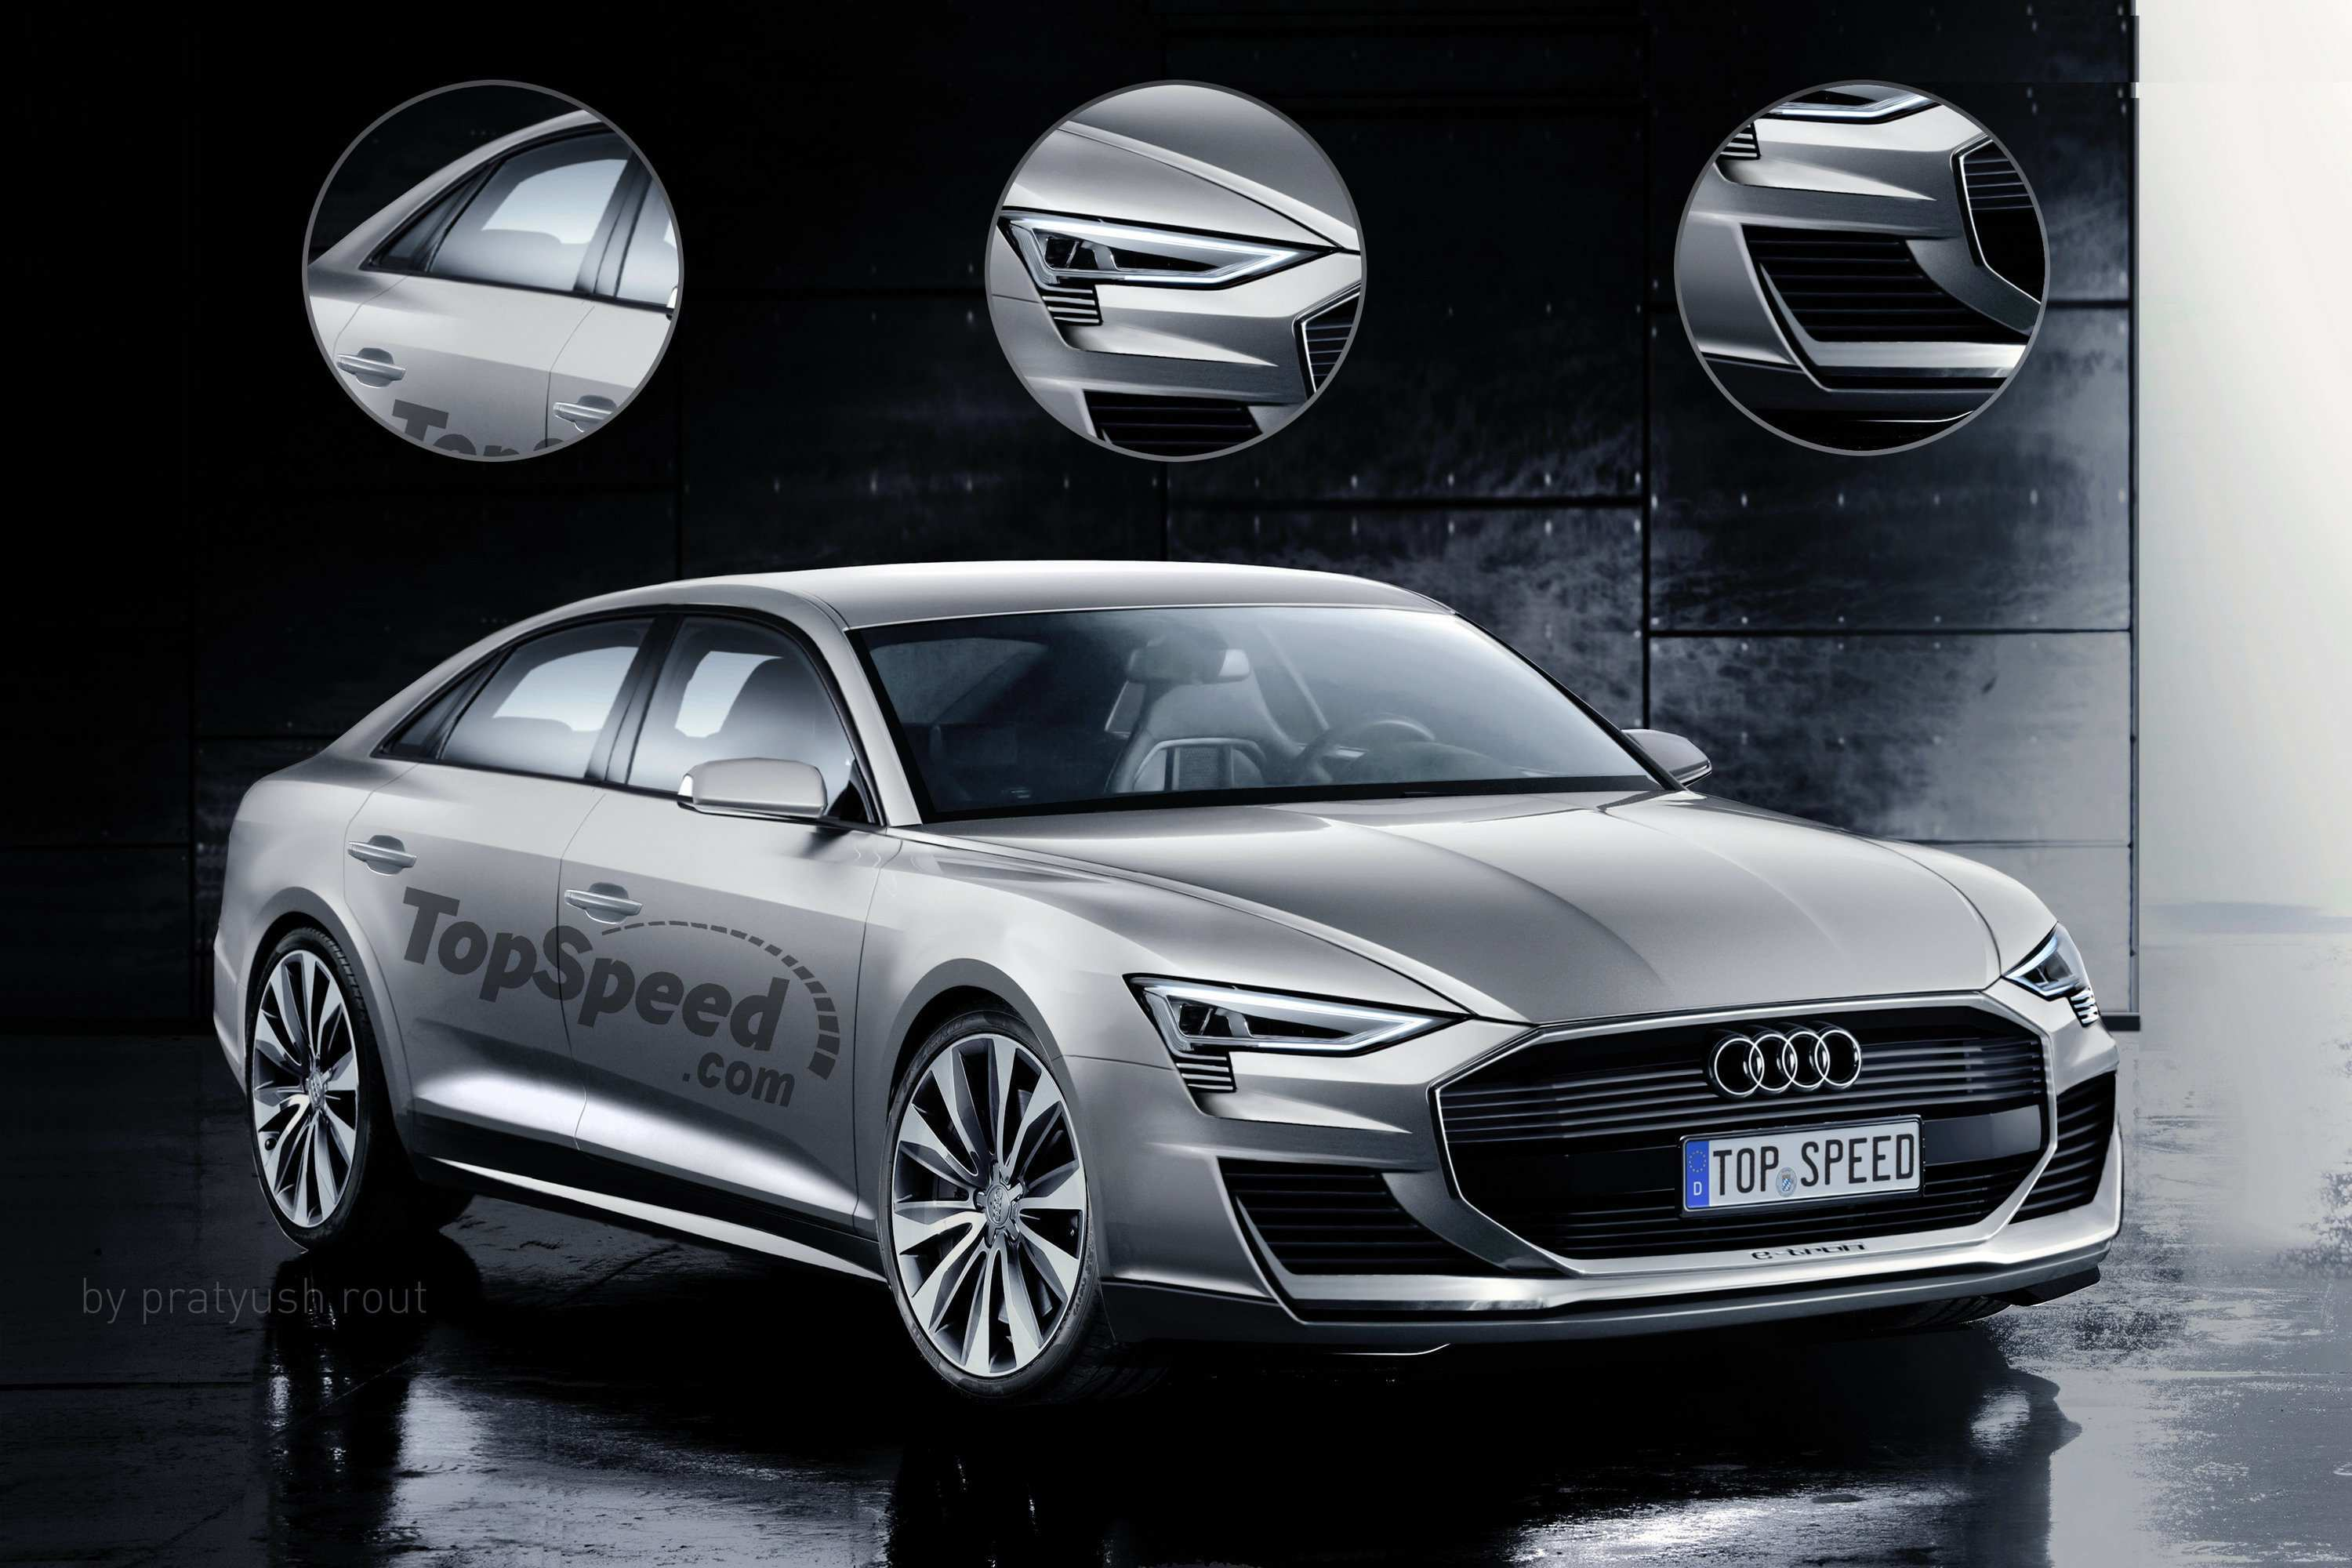 70 Concept of Audi A9 Specs Research New with Audi A9 Specs